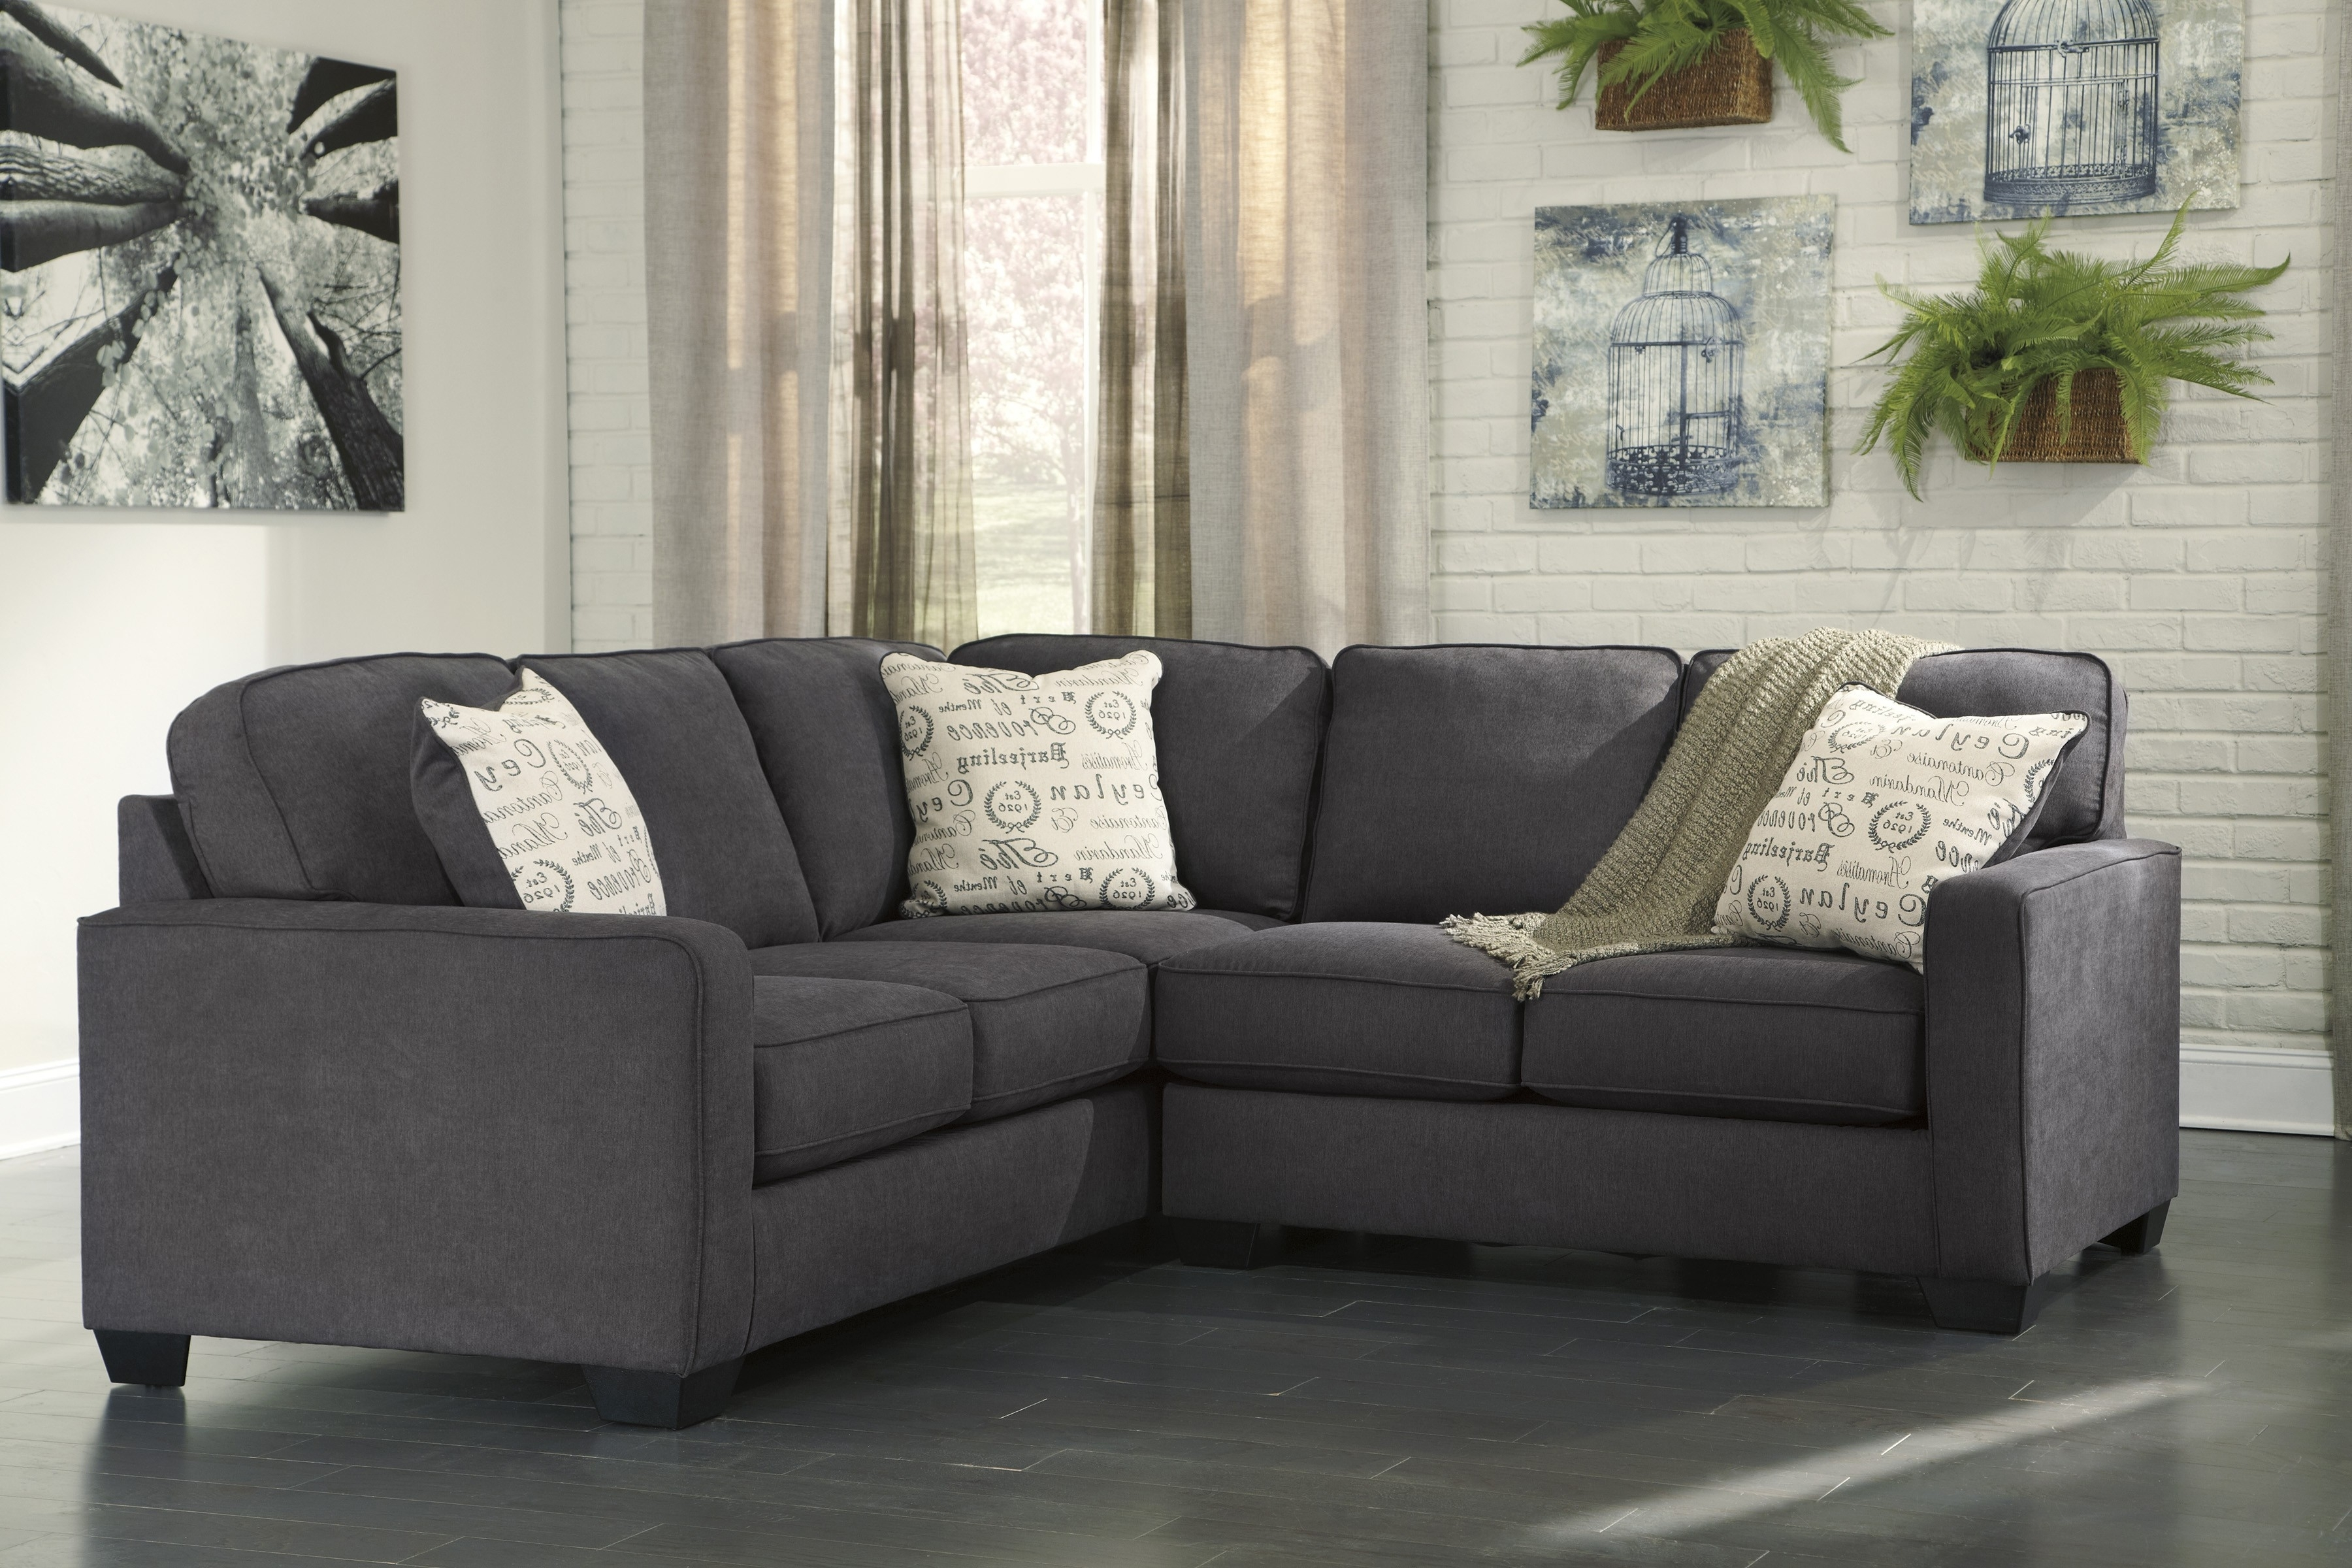 Alenya Charcoal Piece Sectional Sofa For Furnitureusa Raf Love Tures Regarding Aspen 2 Piece Sleeper Sectionals With Raf Chaise (View 7 of 25)